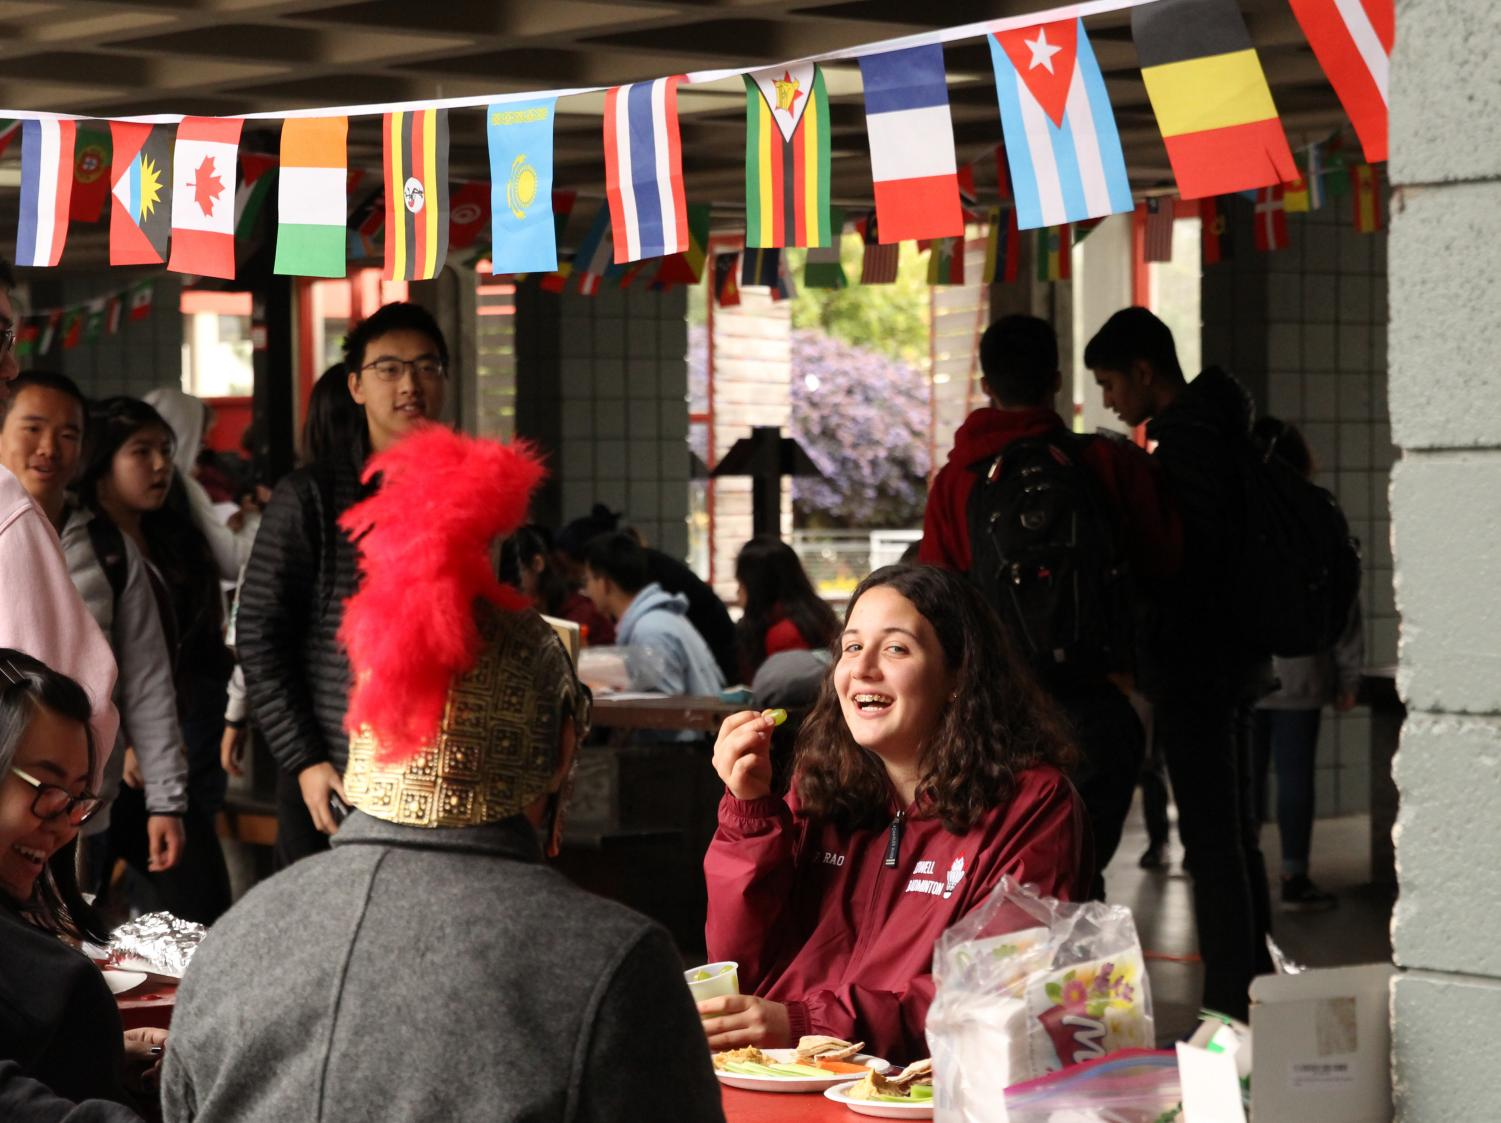 Students enjoy Globefest beneath international flags.